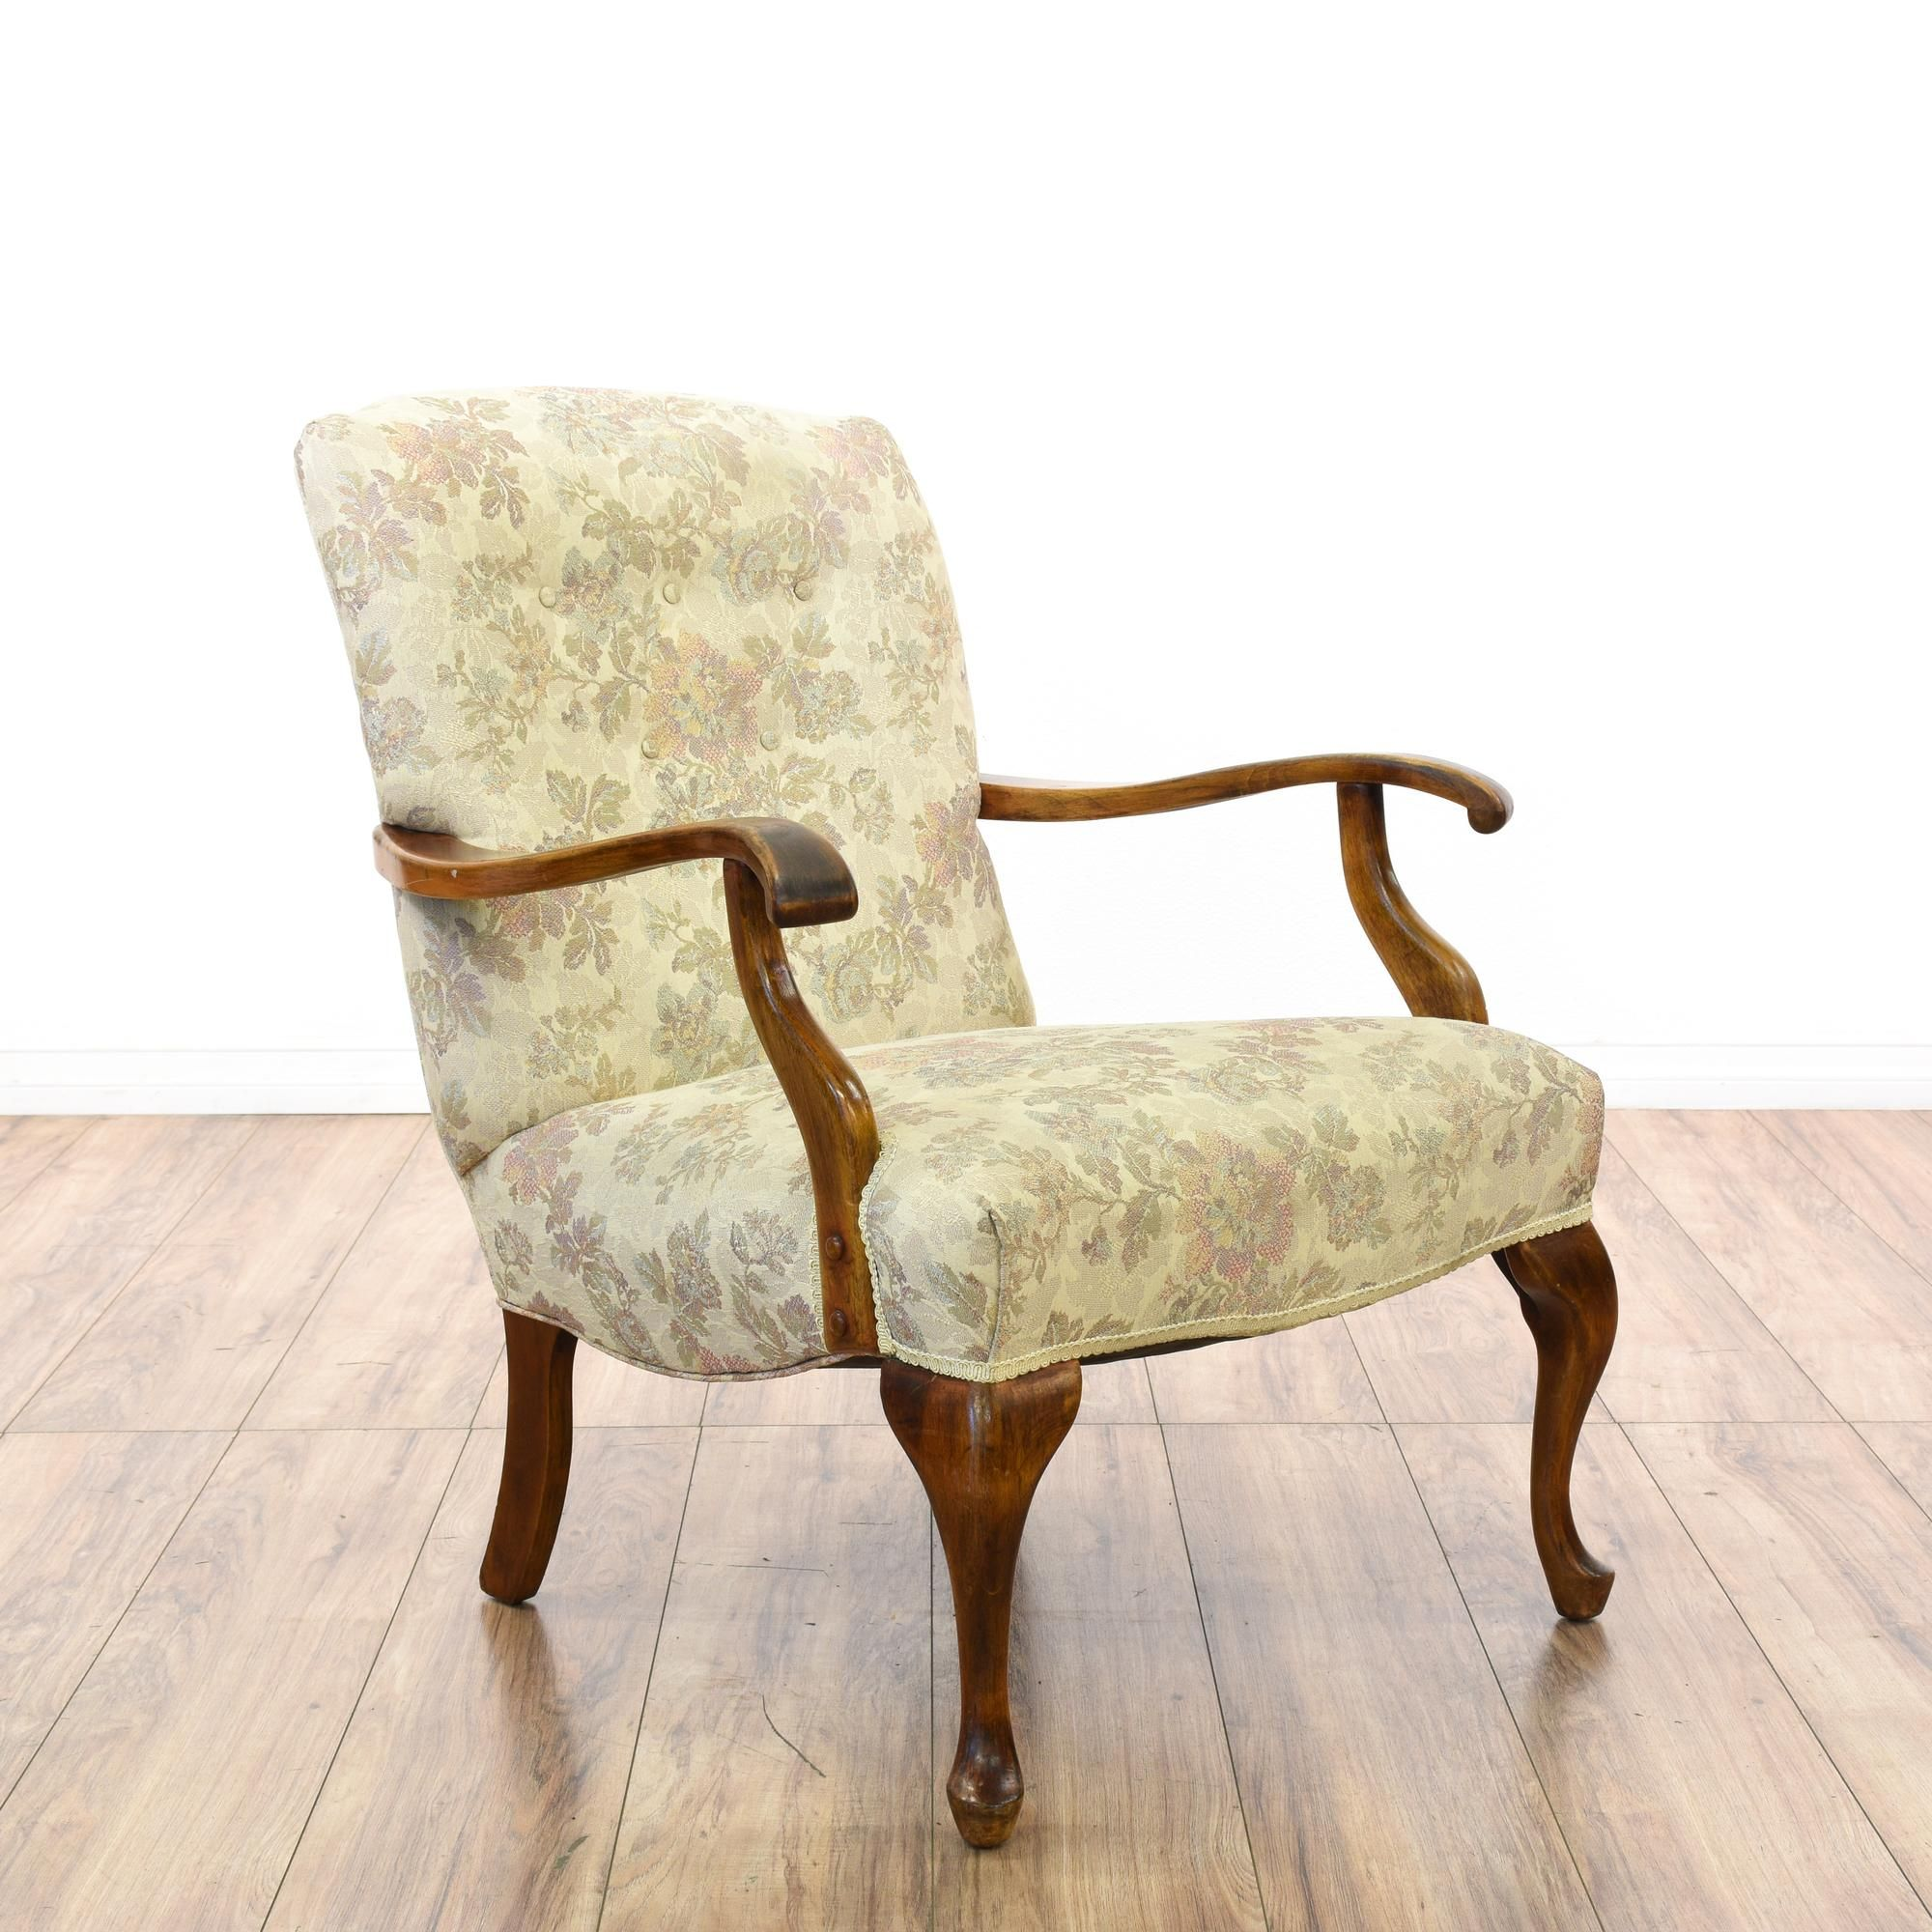 This accent chair is upholstered in a durable beige fabric with a